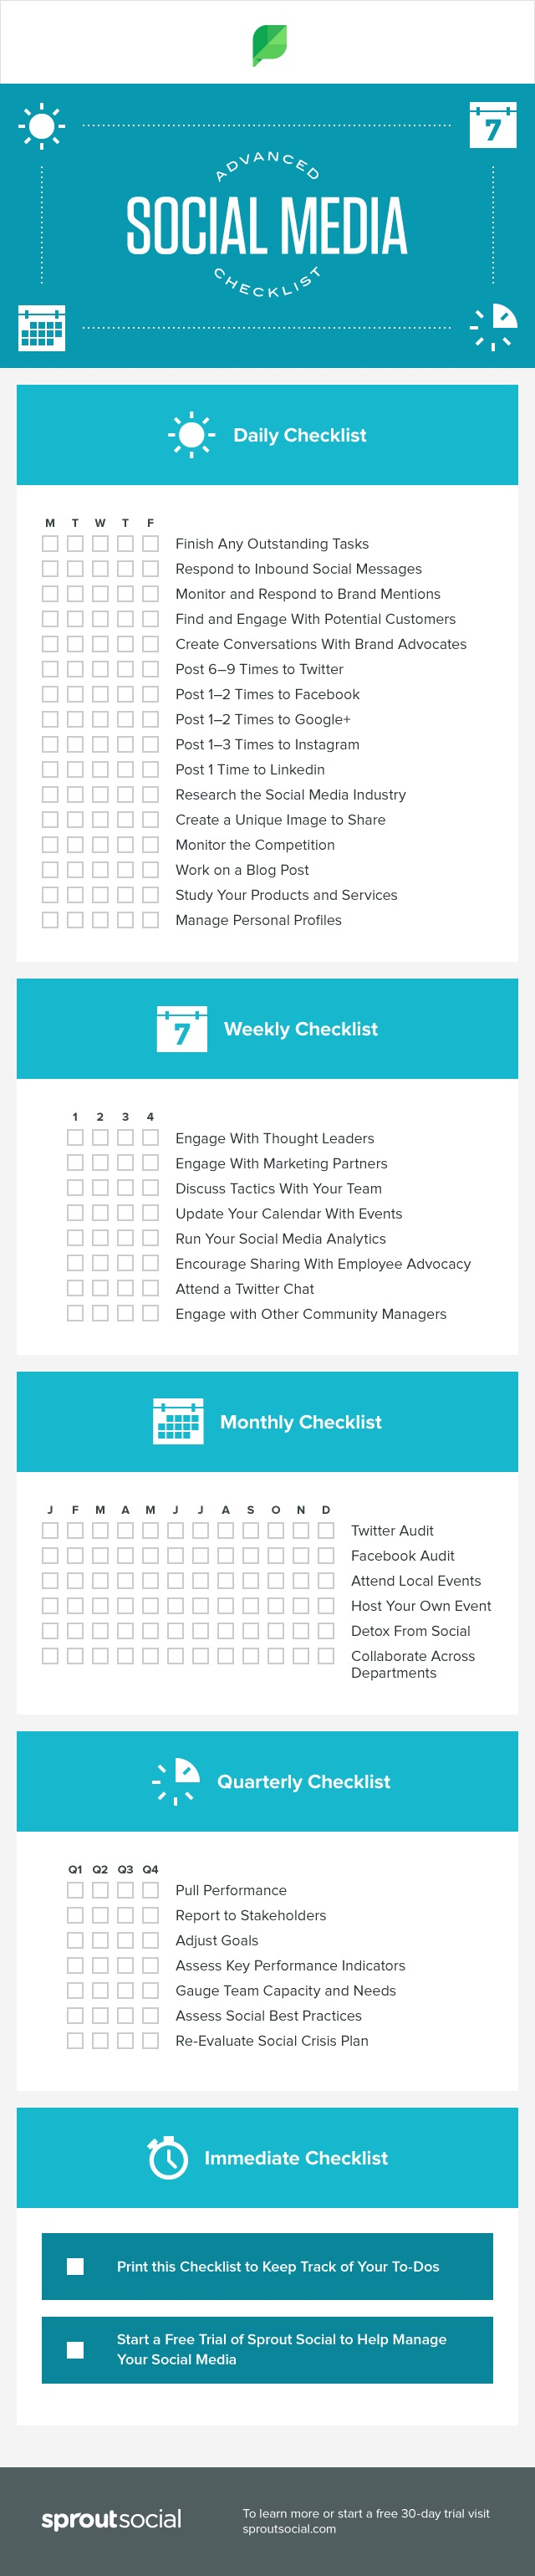 A Daily, Weekly & Monthly Checklist to Improve Your Social Media Strategy